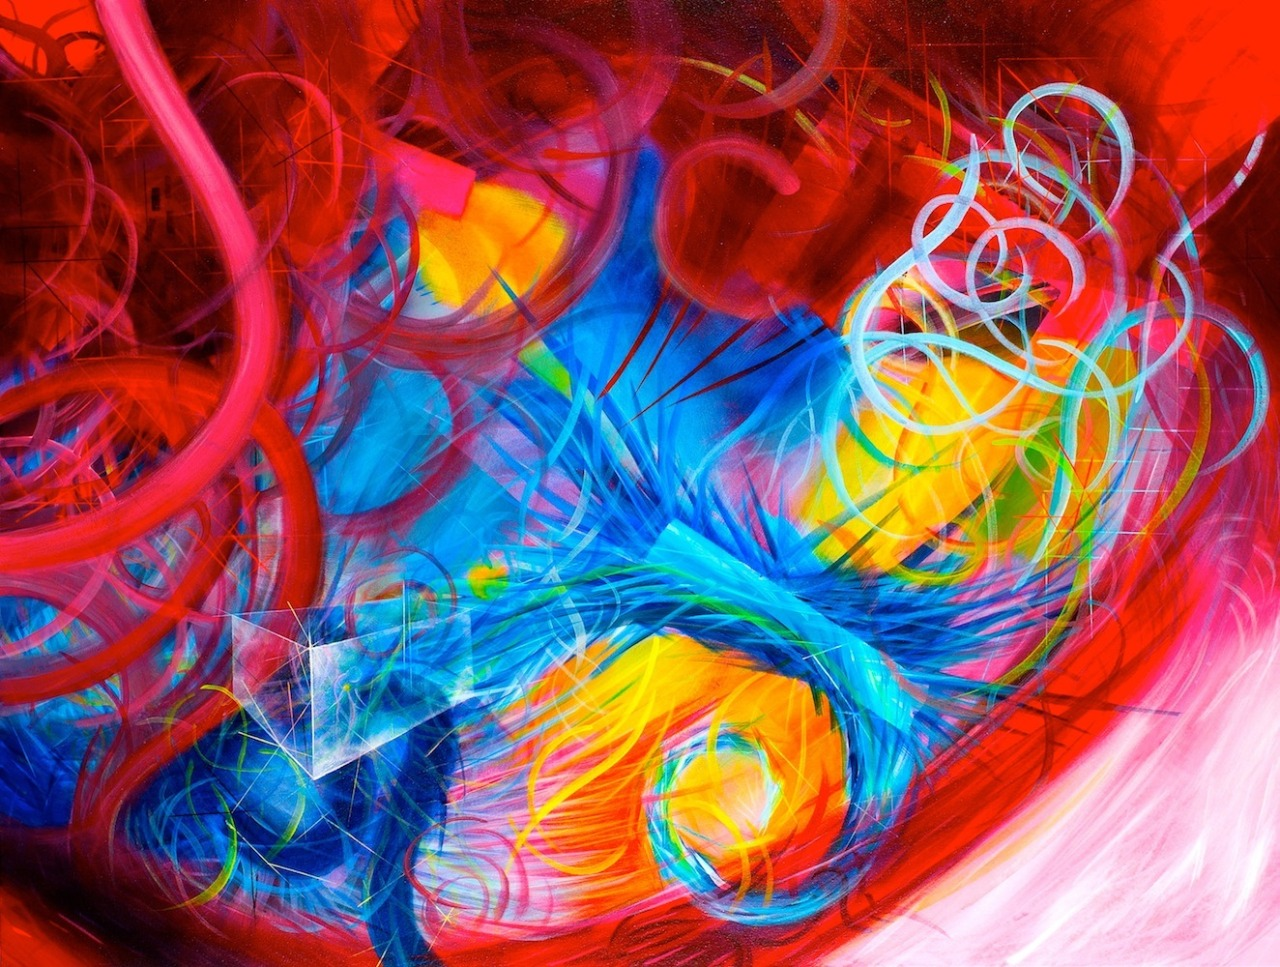 acrylicalchemy:</p> <p>Michael Carini | Acrylic on Canvas<br /> If you're a fan of my work, can you please help boost my rating HERE :)</p> <p>COLORS AND MORE COLORS!<br /> WE NEED MORE COLOR IN OUR LIVES.<br /> WE CAN'T LIVE IN BLACK AND WHITE.<br /> WE MUST ENJOY LIFE TO THE FULLEST.